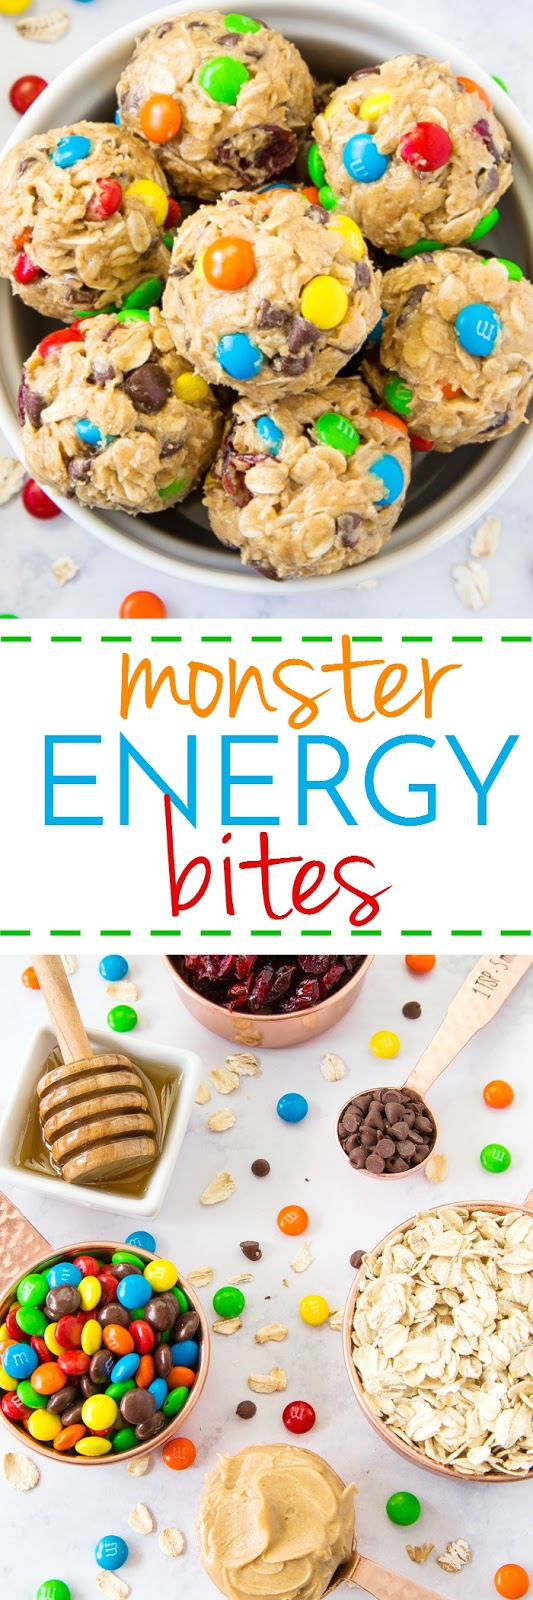 Monster Energy Bites are the best snack when hungry hits!  Loaded with yummy flavors and no-bake!